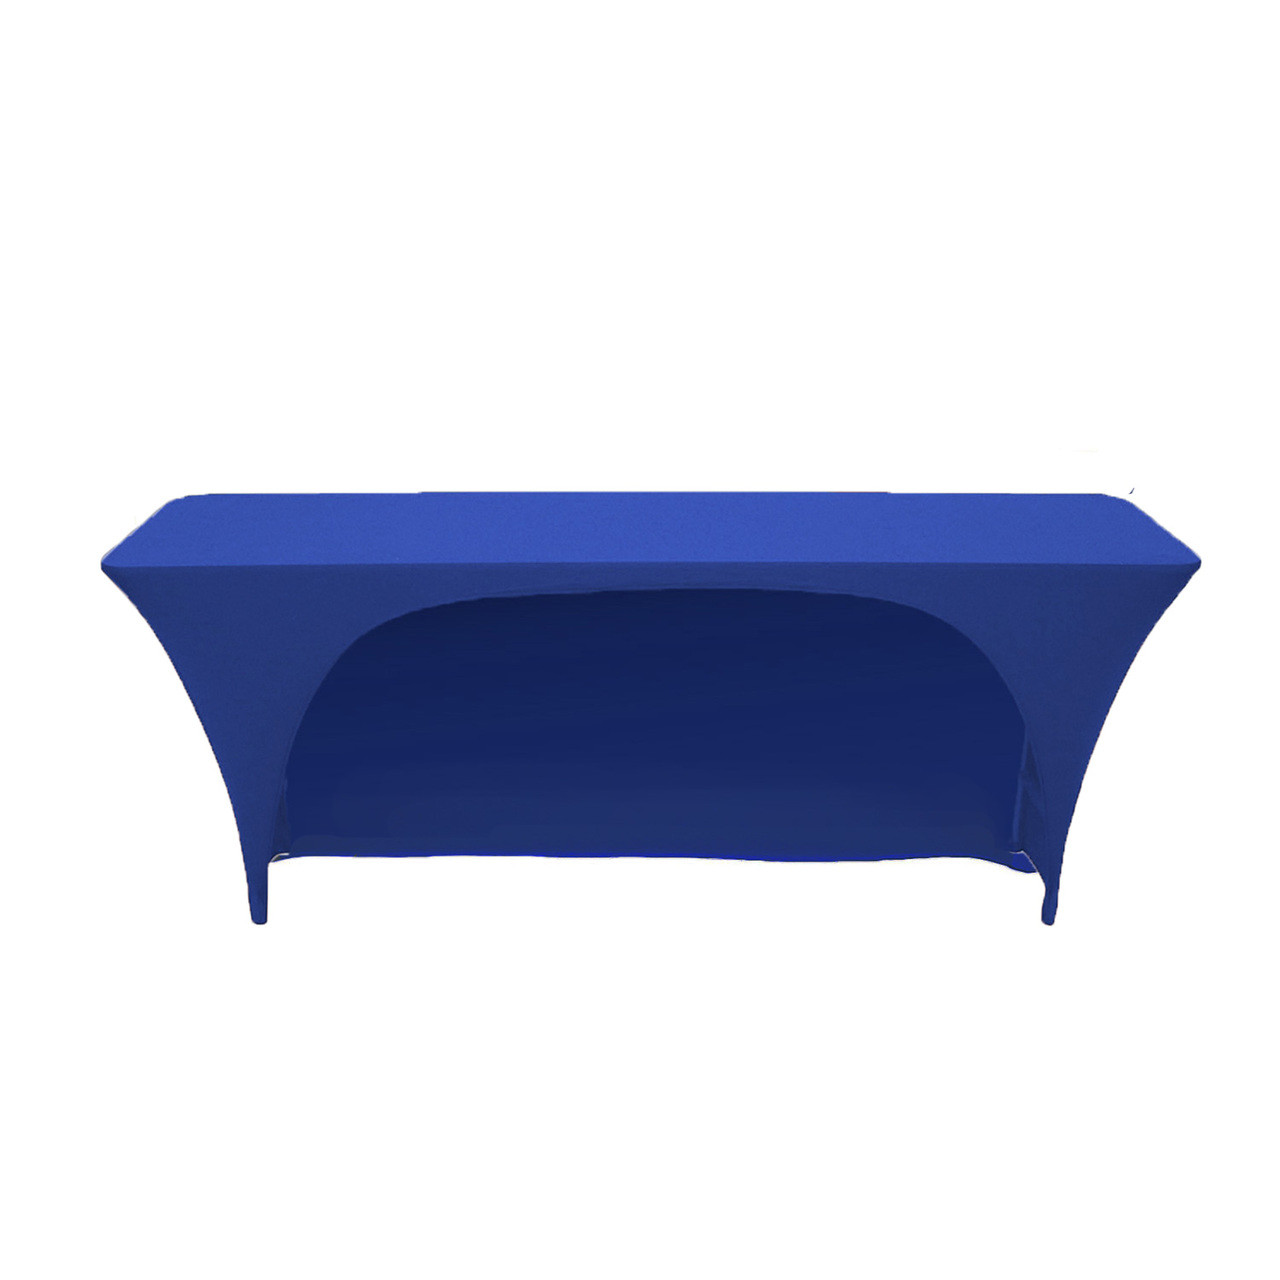 Spandex 6 Ft x 18 Inches Open Back Classroom Rectangular Table Covers Royal Blue  sc 1 st  Bridal Tablecloths & Spandex 6 Ft x 18 Inches Open Back Classroom Rectangular Table ...